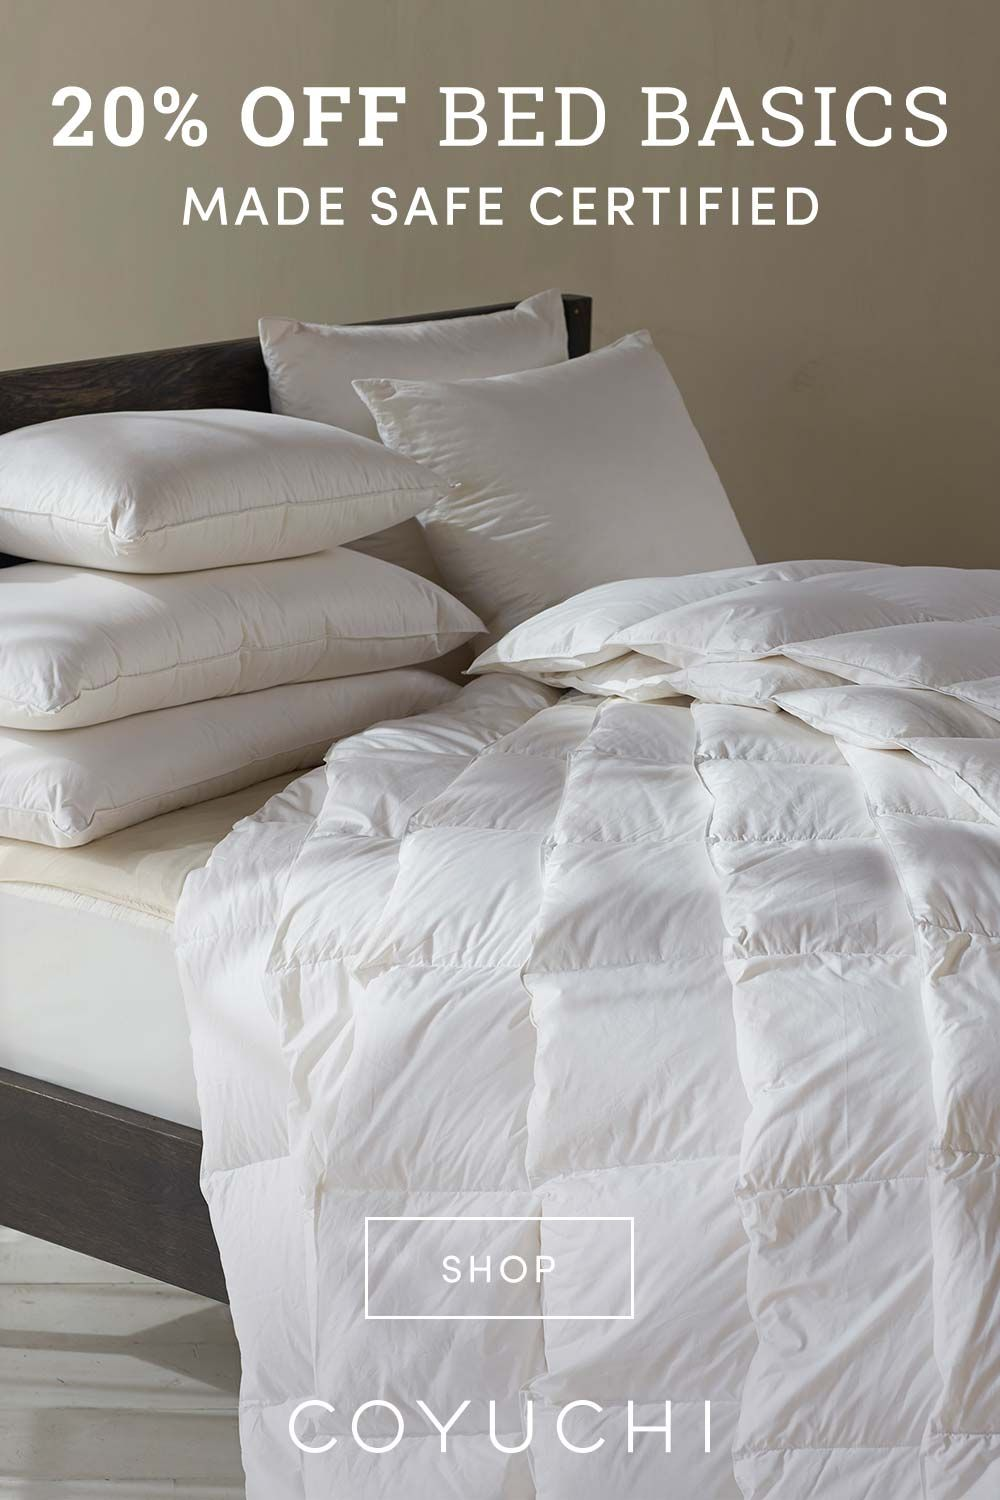 20 Off Made Safe Organic Bedding Essentials Down Pillows Duvet Inserts Non Toxic Organic Cotton Comforters And Organic M Bed Rustic Bedroom Furniture